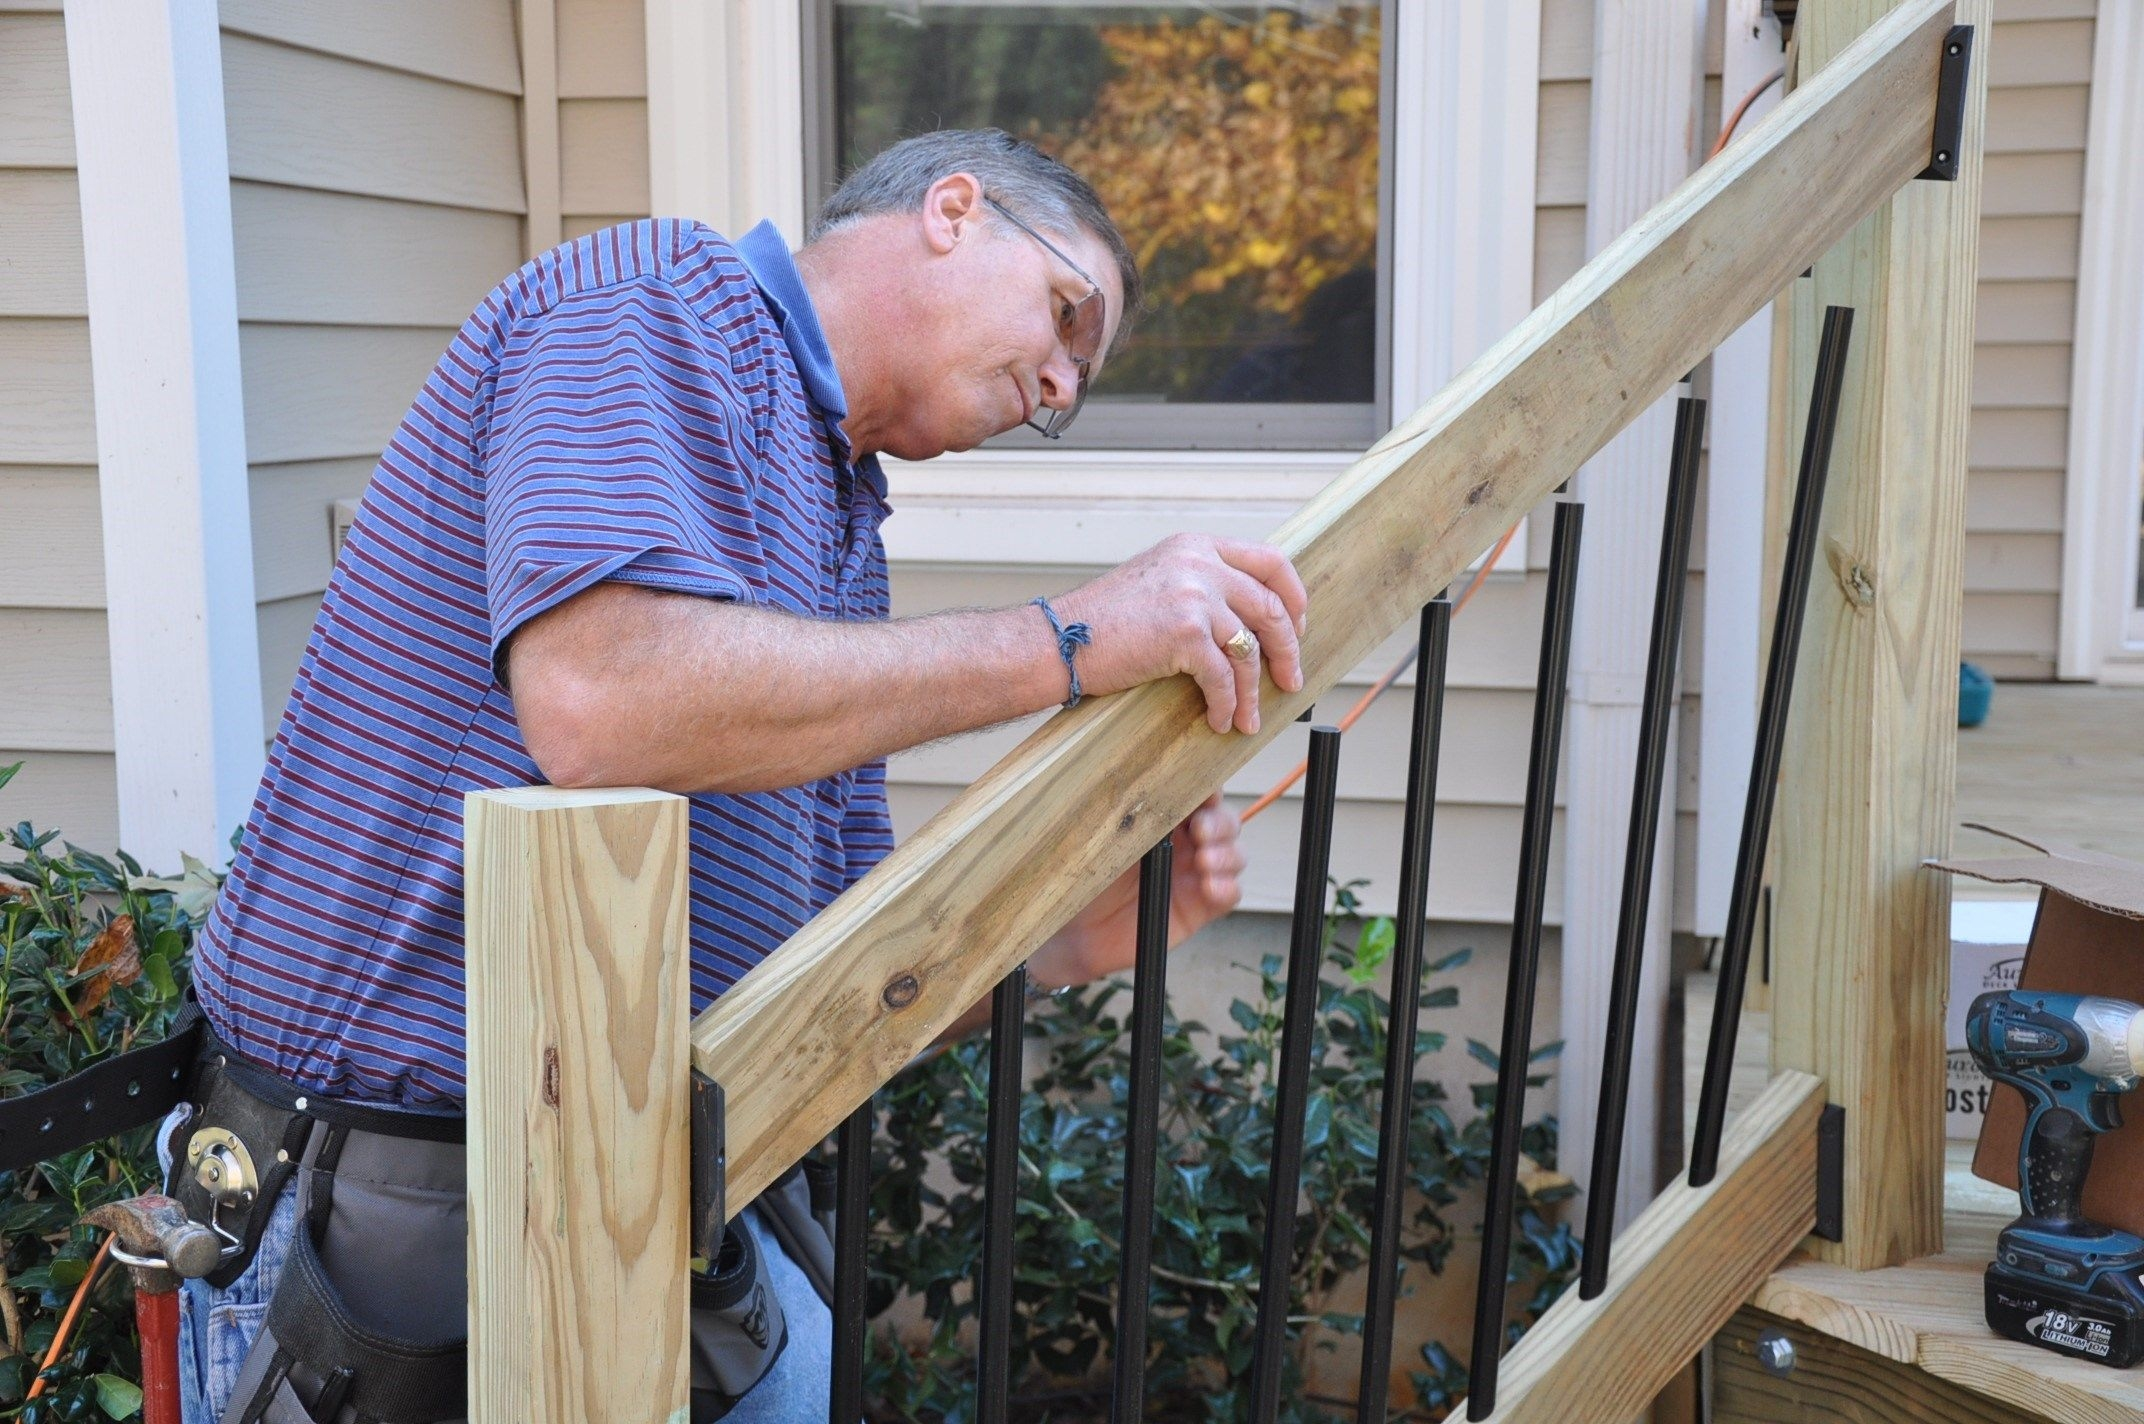 How To Install Deck Stair Railings Decks Com | Premade Wooden Steps For Porch | Cedar Tone | Deck Stairs | Fiberglass | Concrete Stairs | Manufactured Homes